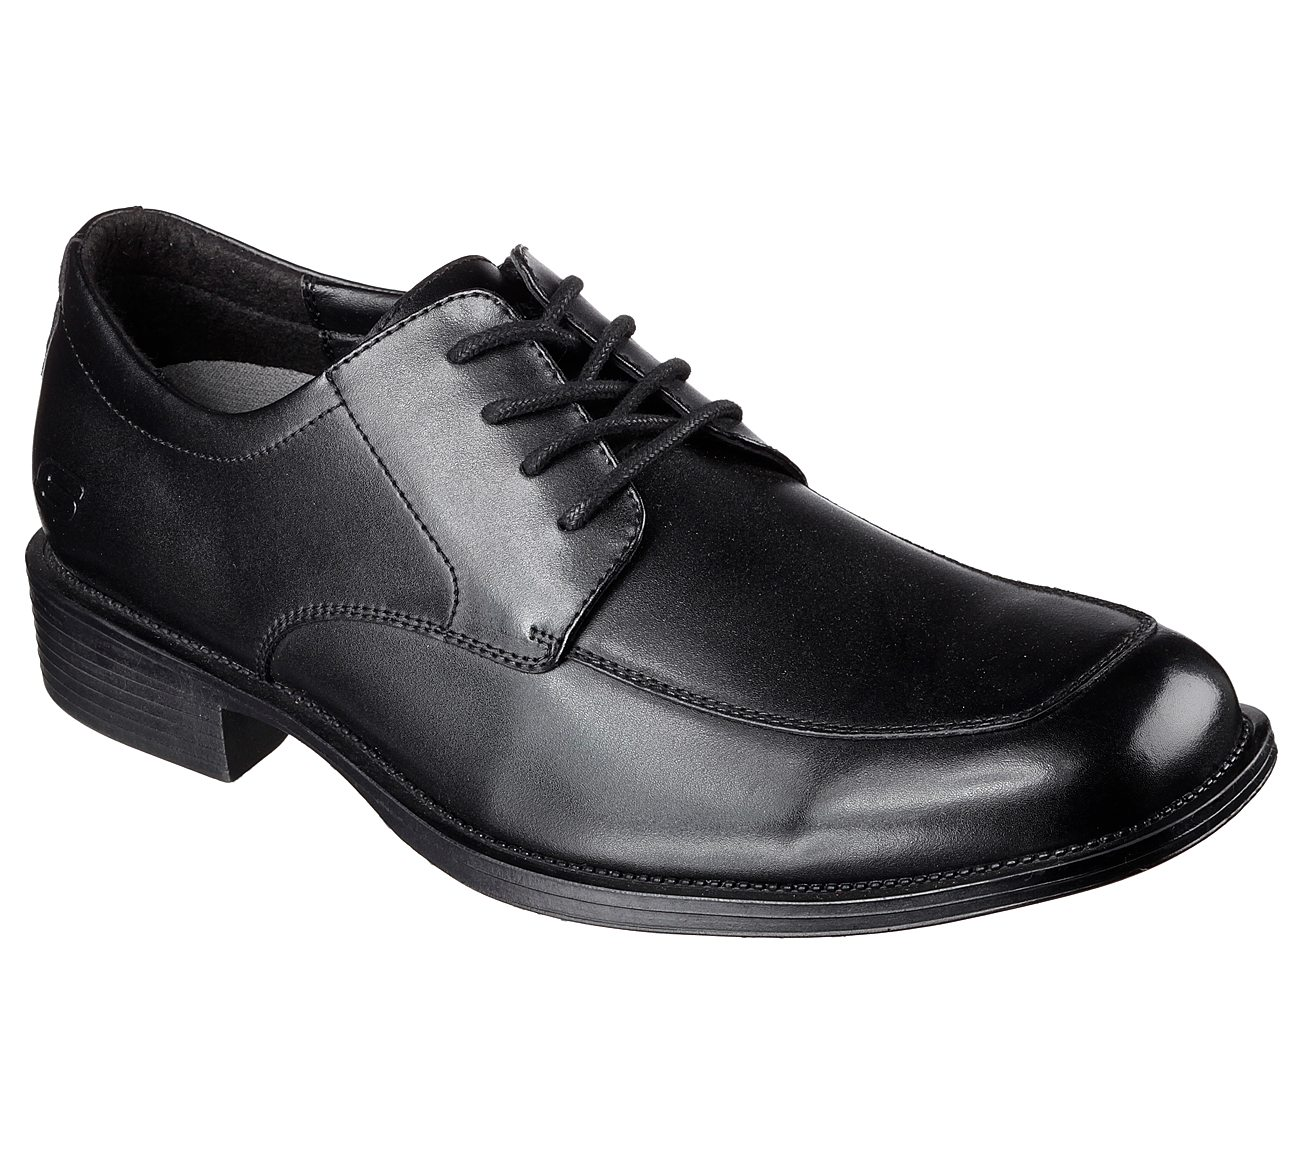 a6eb388197 Buy SKECHERS Hanzer Modern Comfort Shoes only $50.00